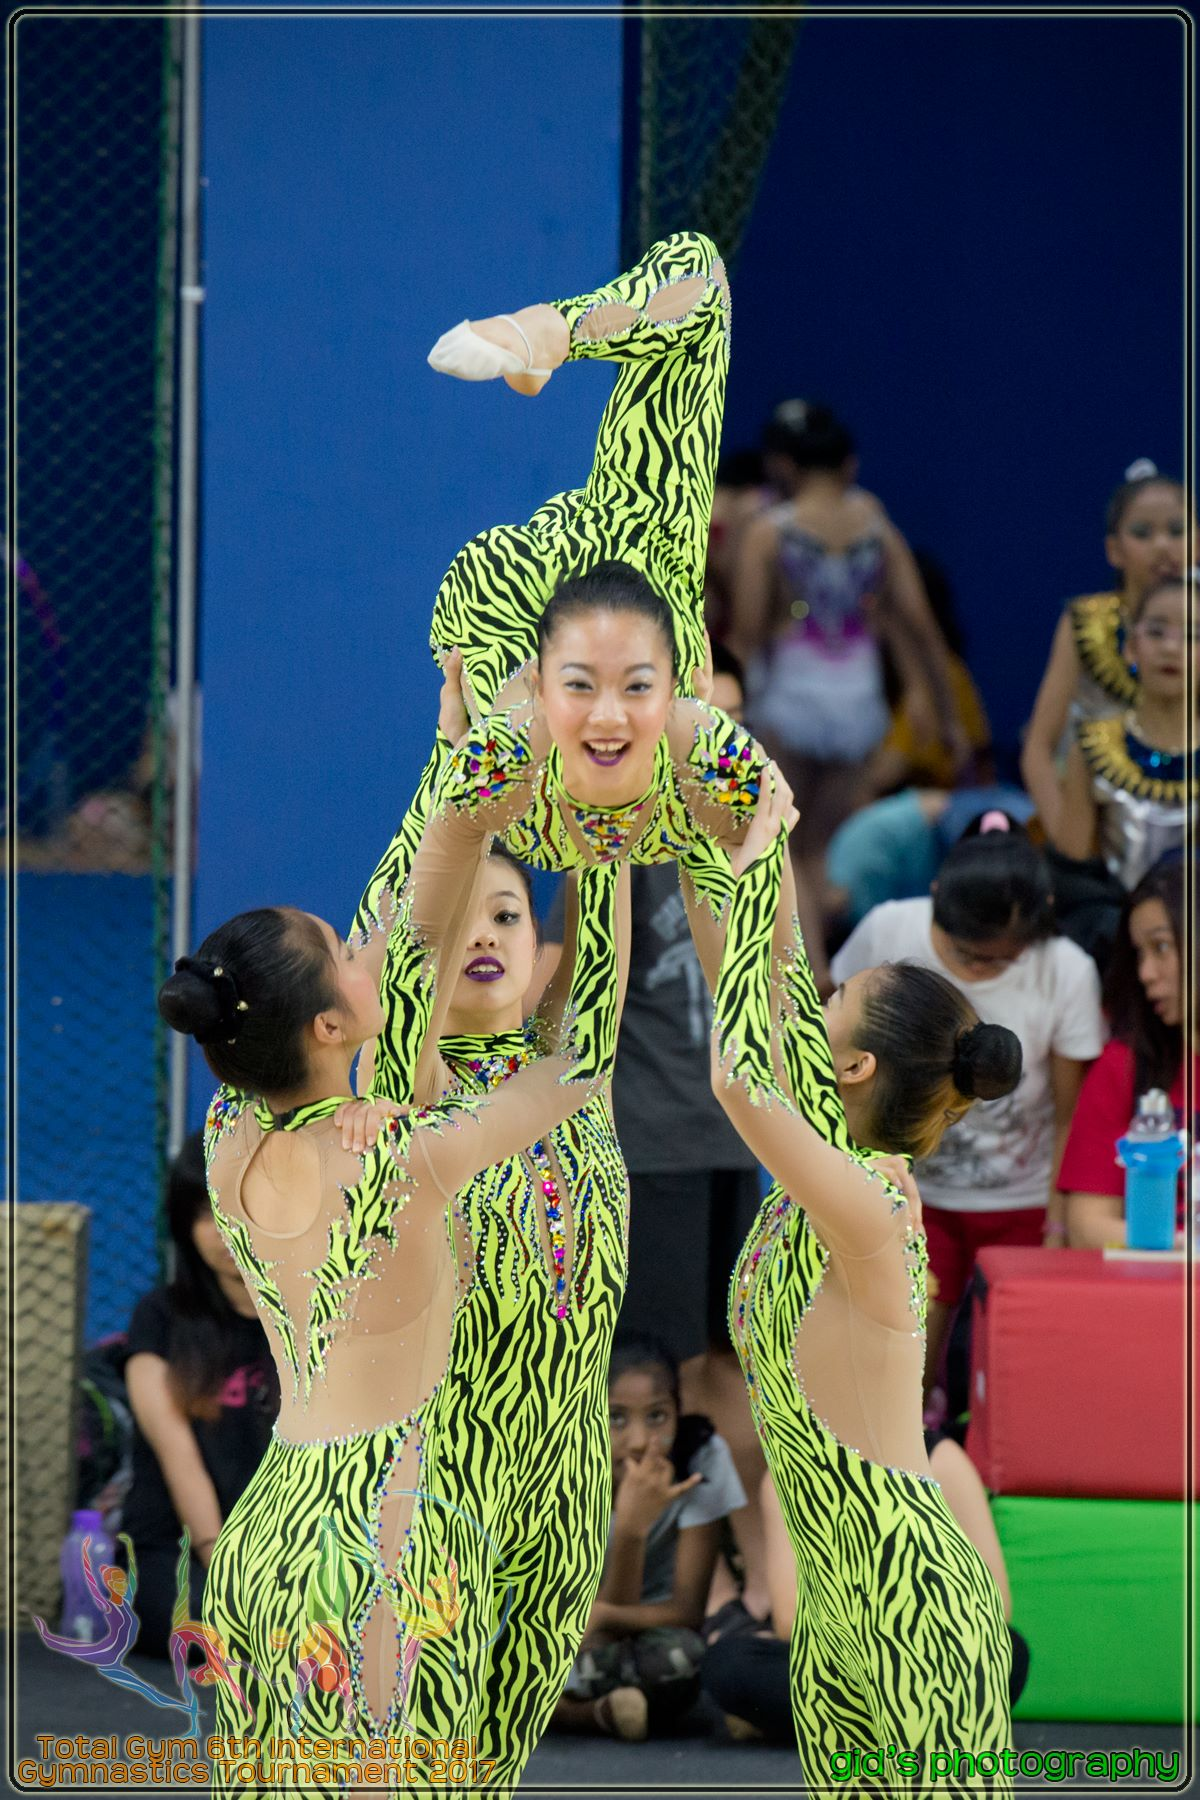 Aesthetic Group Gymnastics